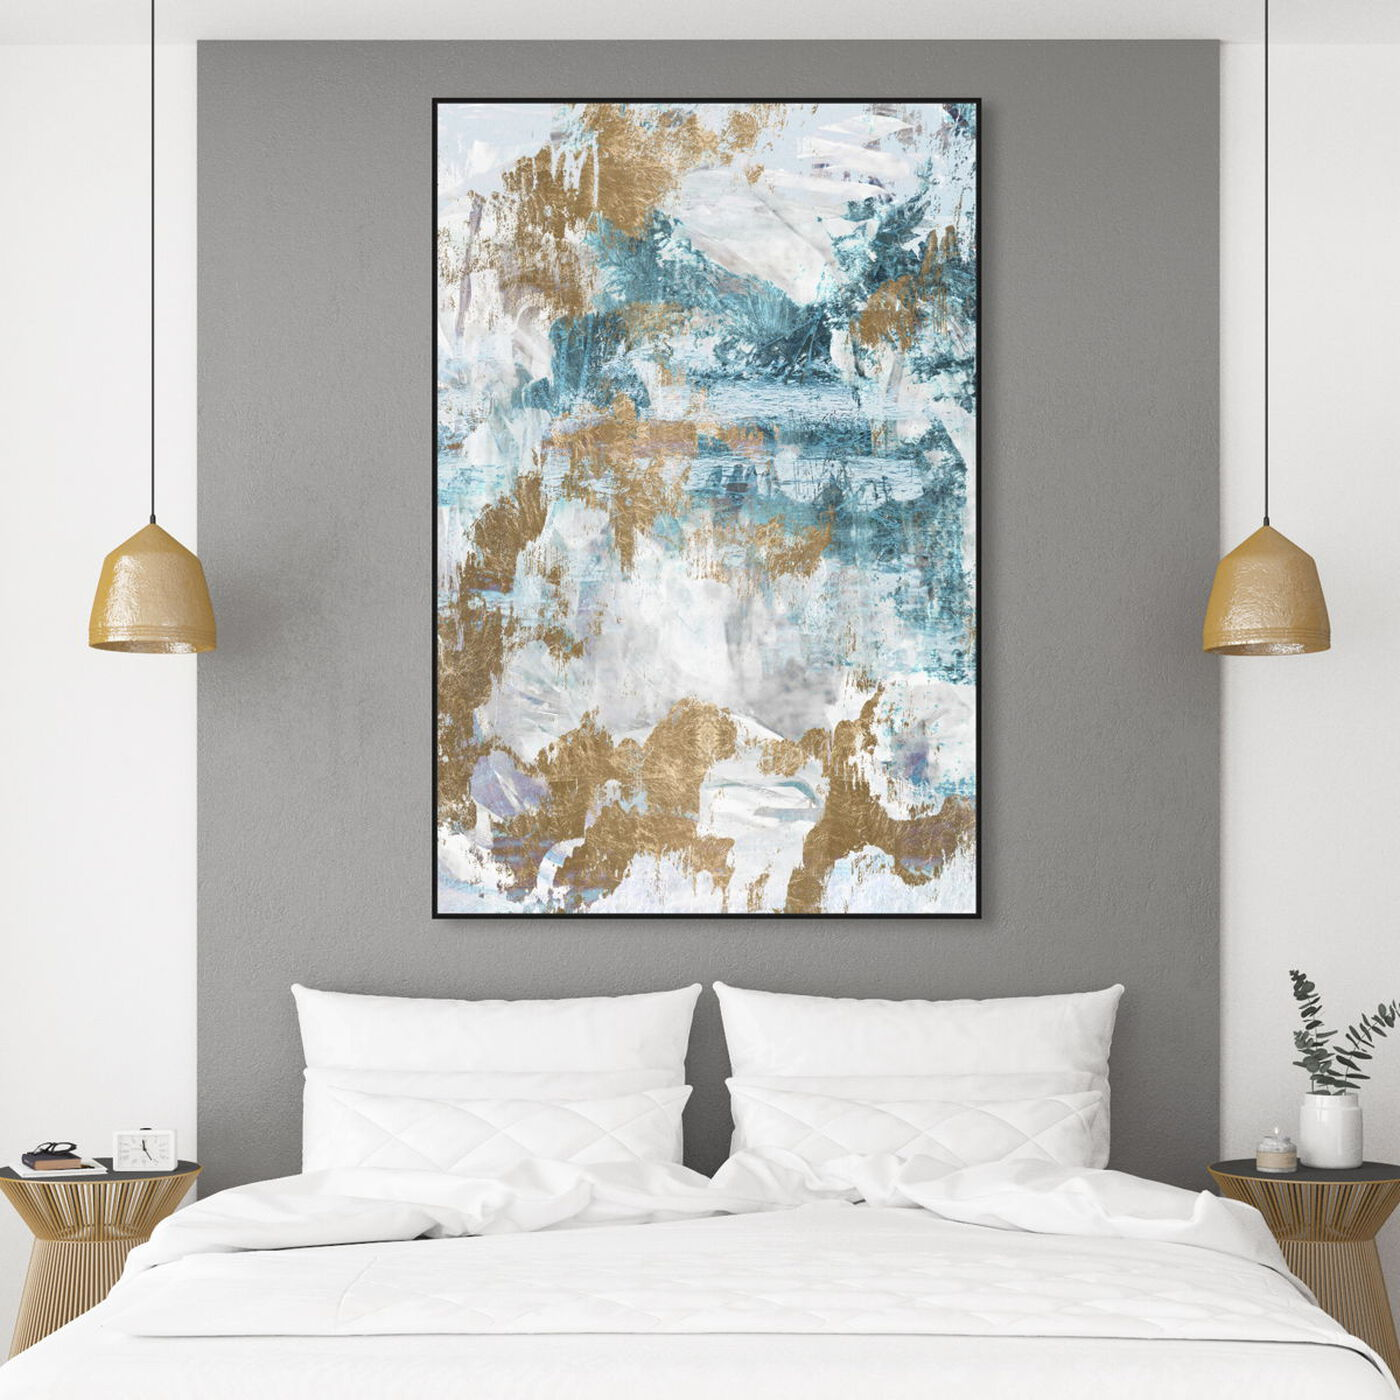 Hanging view of Walking on a Dream featuring abstract and paint art.